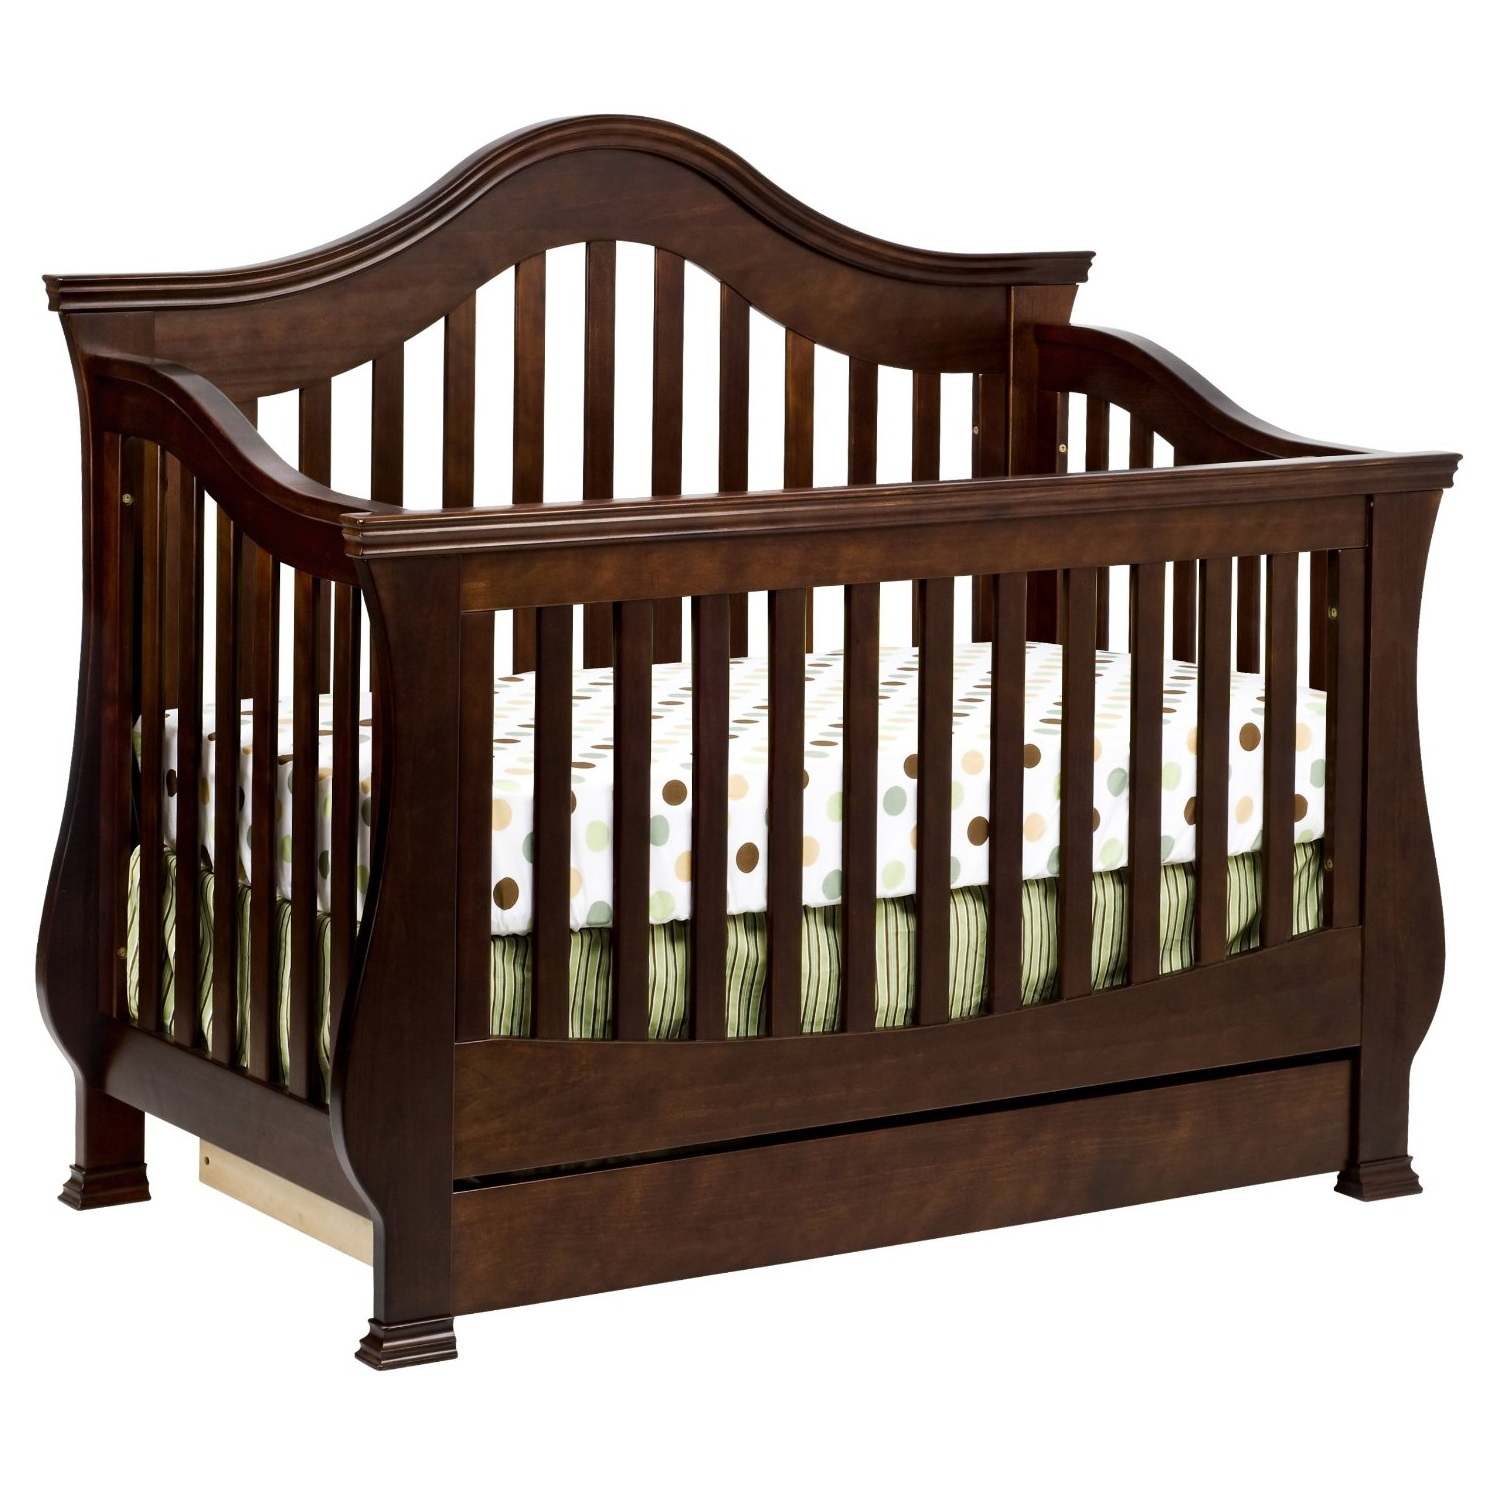 Best crib for baby - Million Dollar Baby Classic Ashbury 4 In 1 Convertible Crib